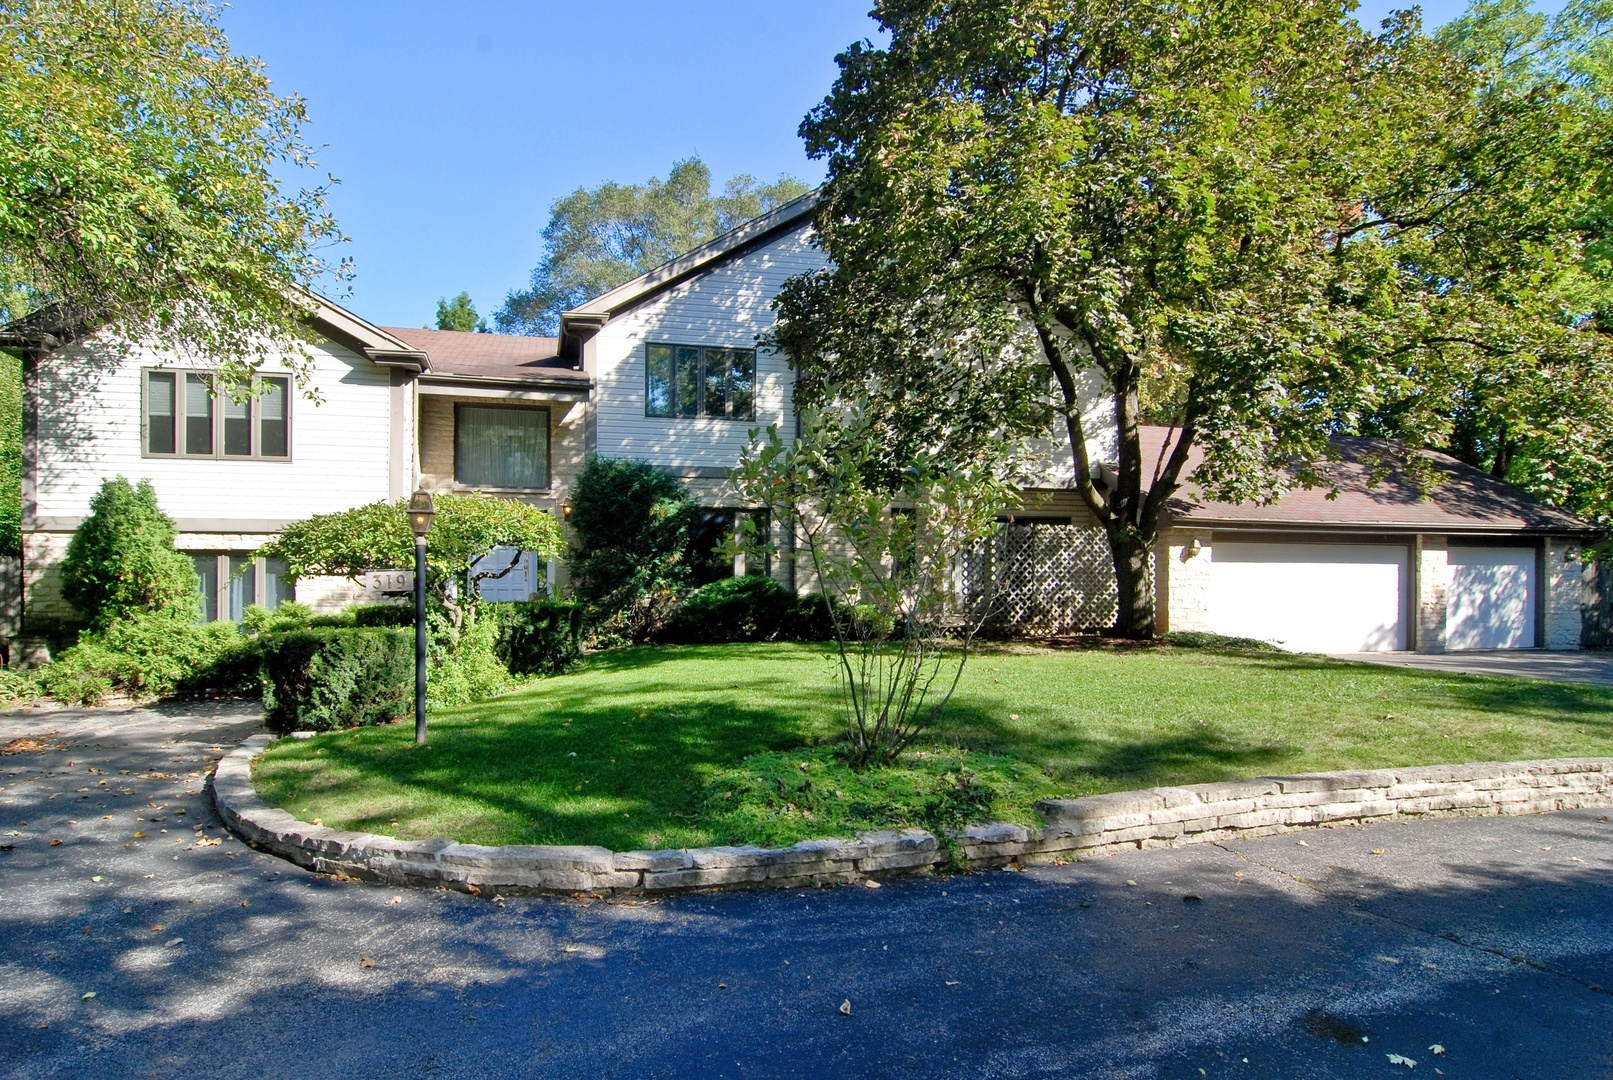 319 Hibbard Road, Winnetka in Cook County, IL 60093 Home for Sale